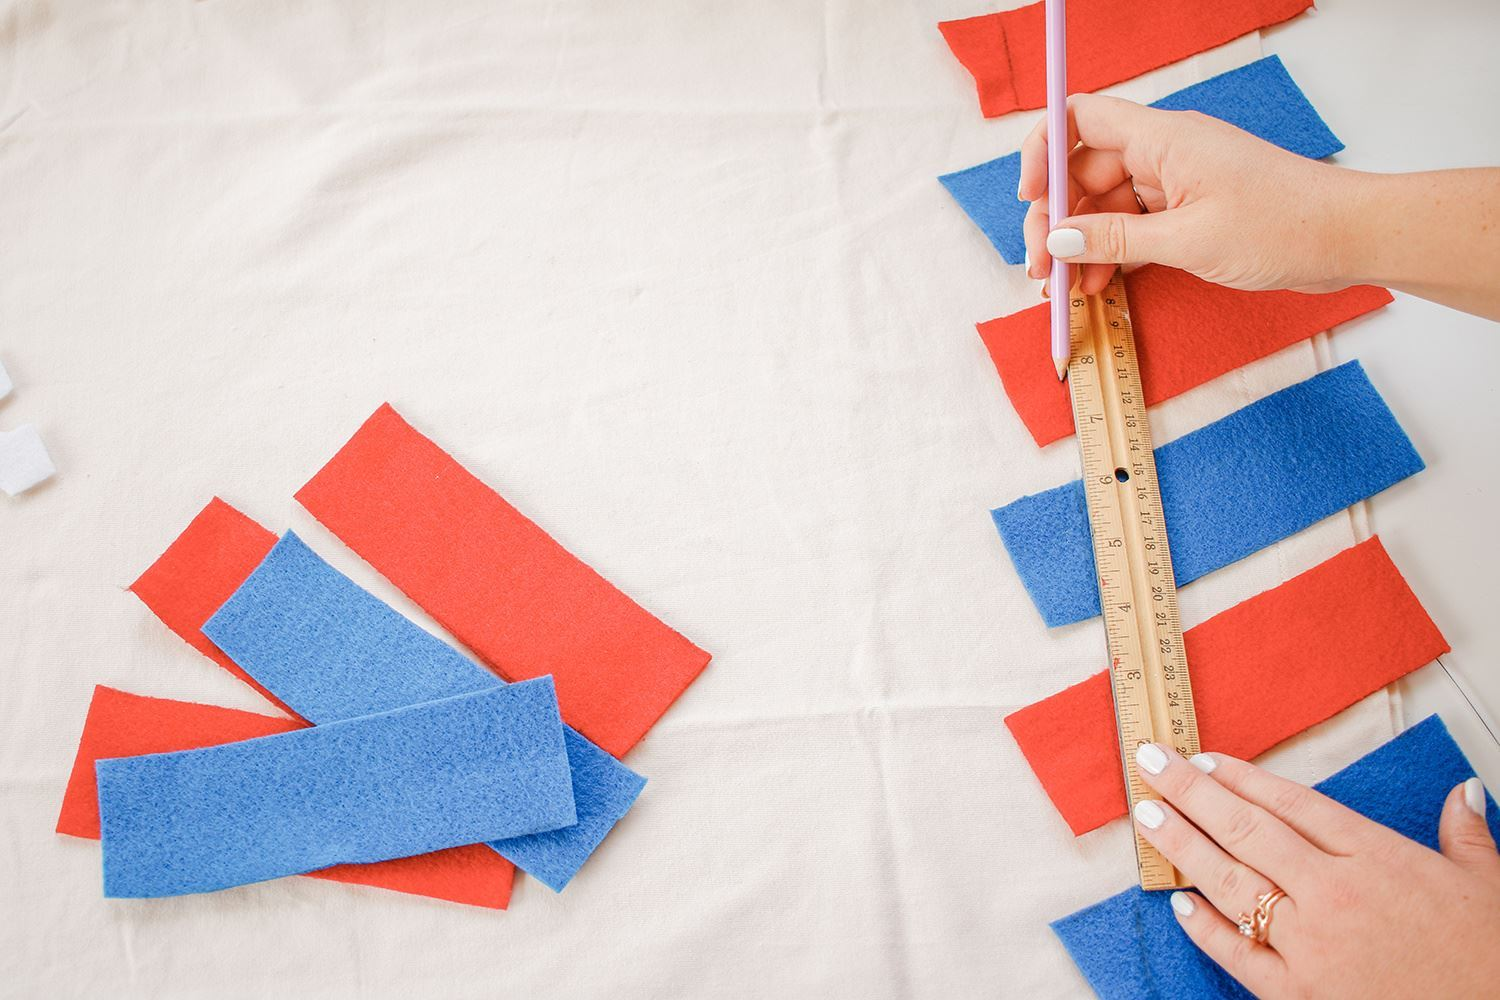 Mark ends of red and blue felt strips with pencil